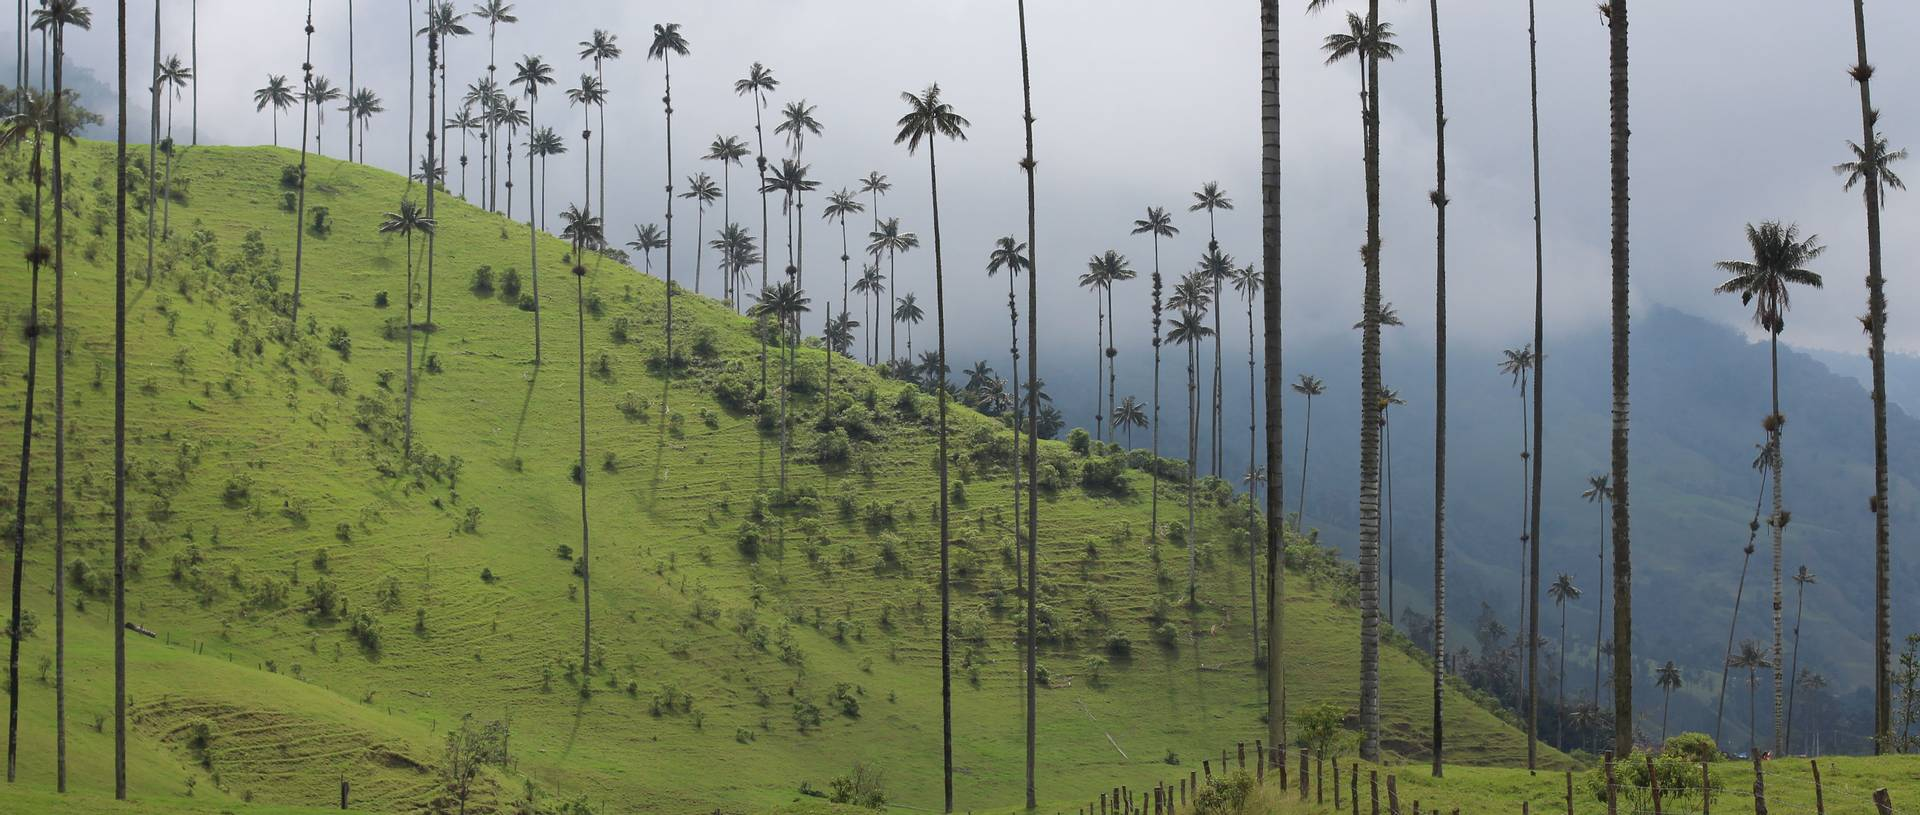 Wax Palm Region, Salento, Colombia